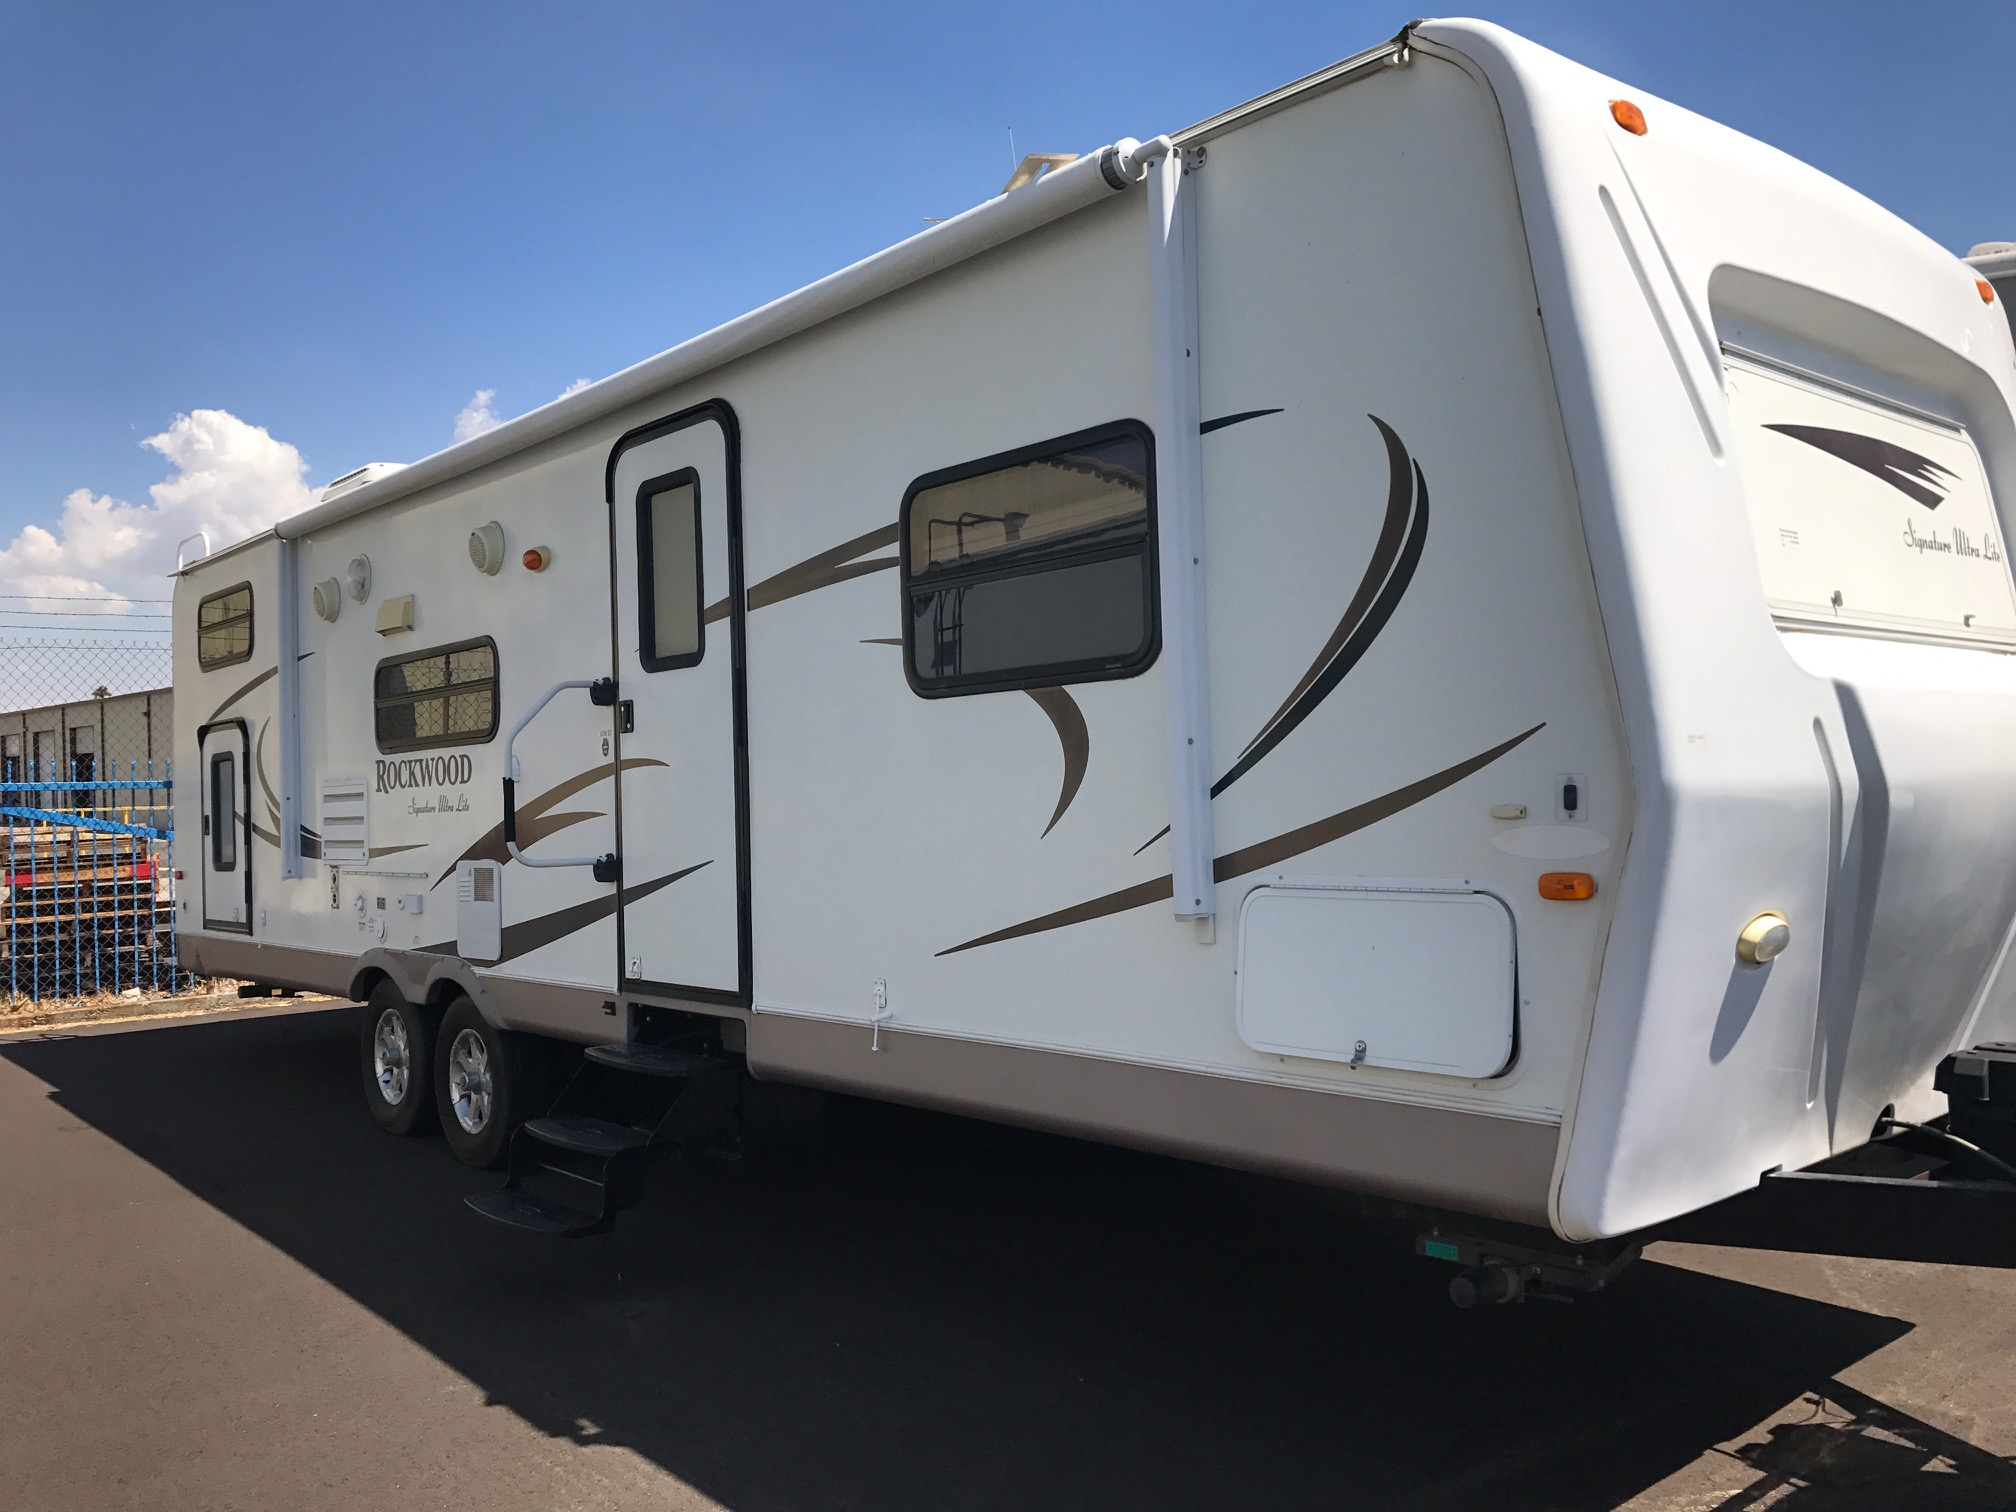 2010 Forest River Rockwood for rent from Class A Motorhome Rentals